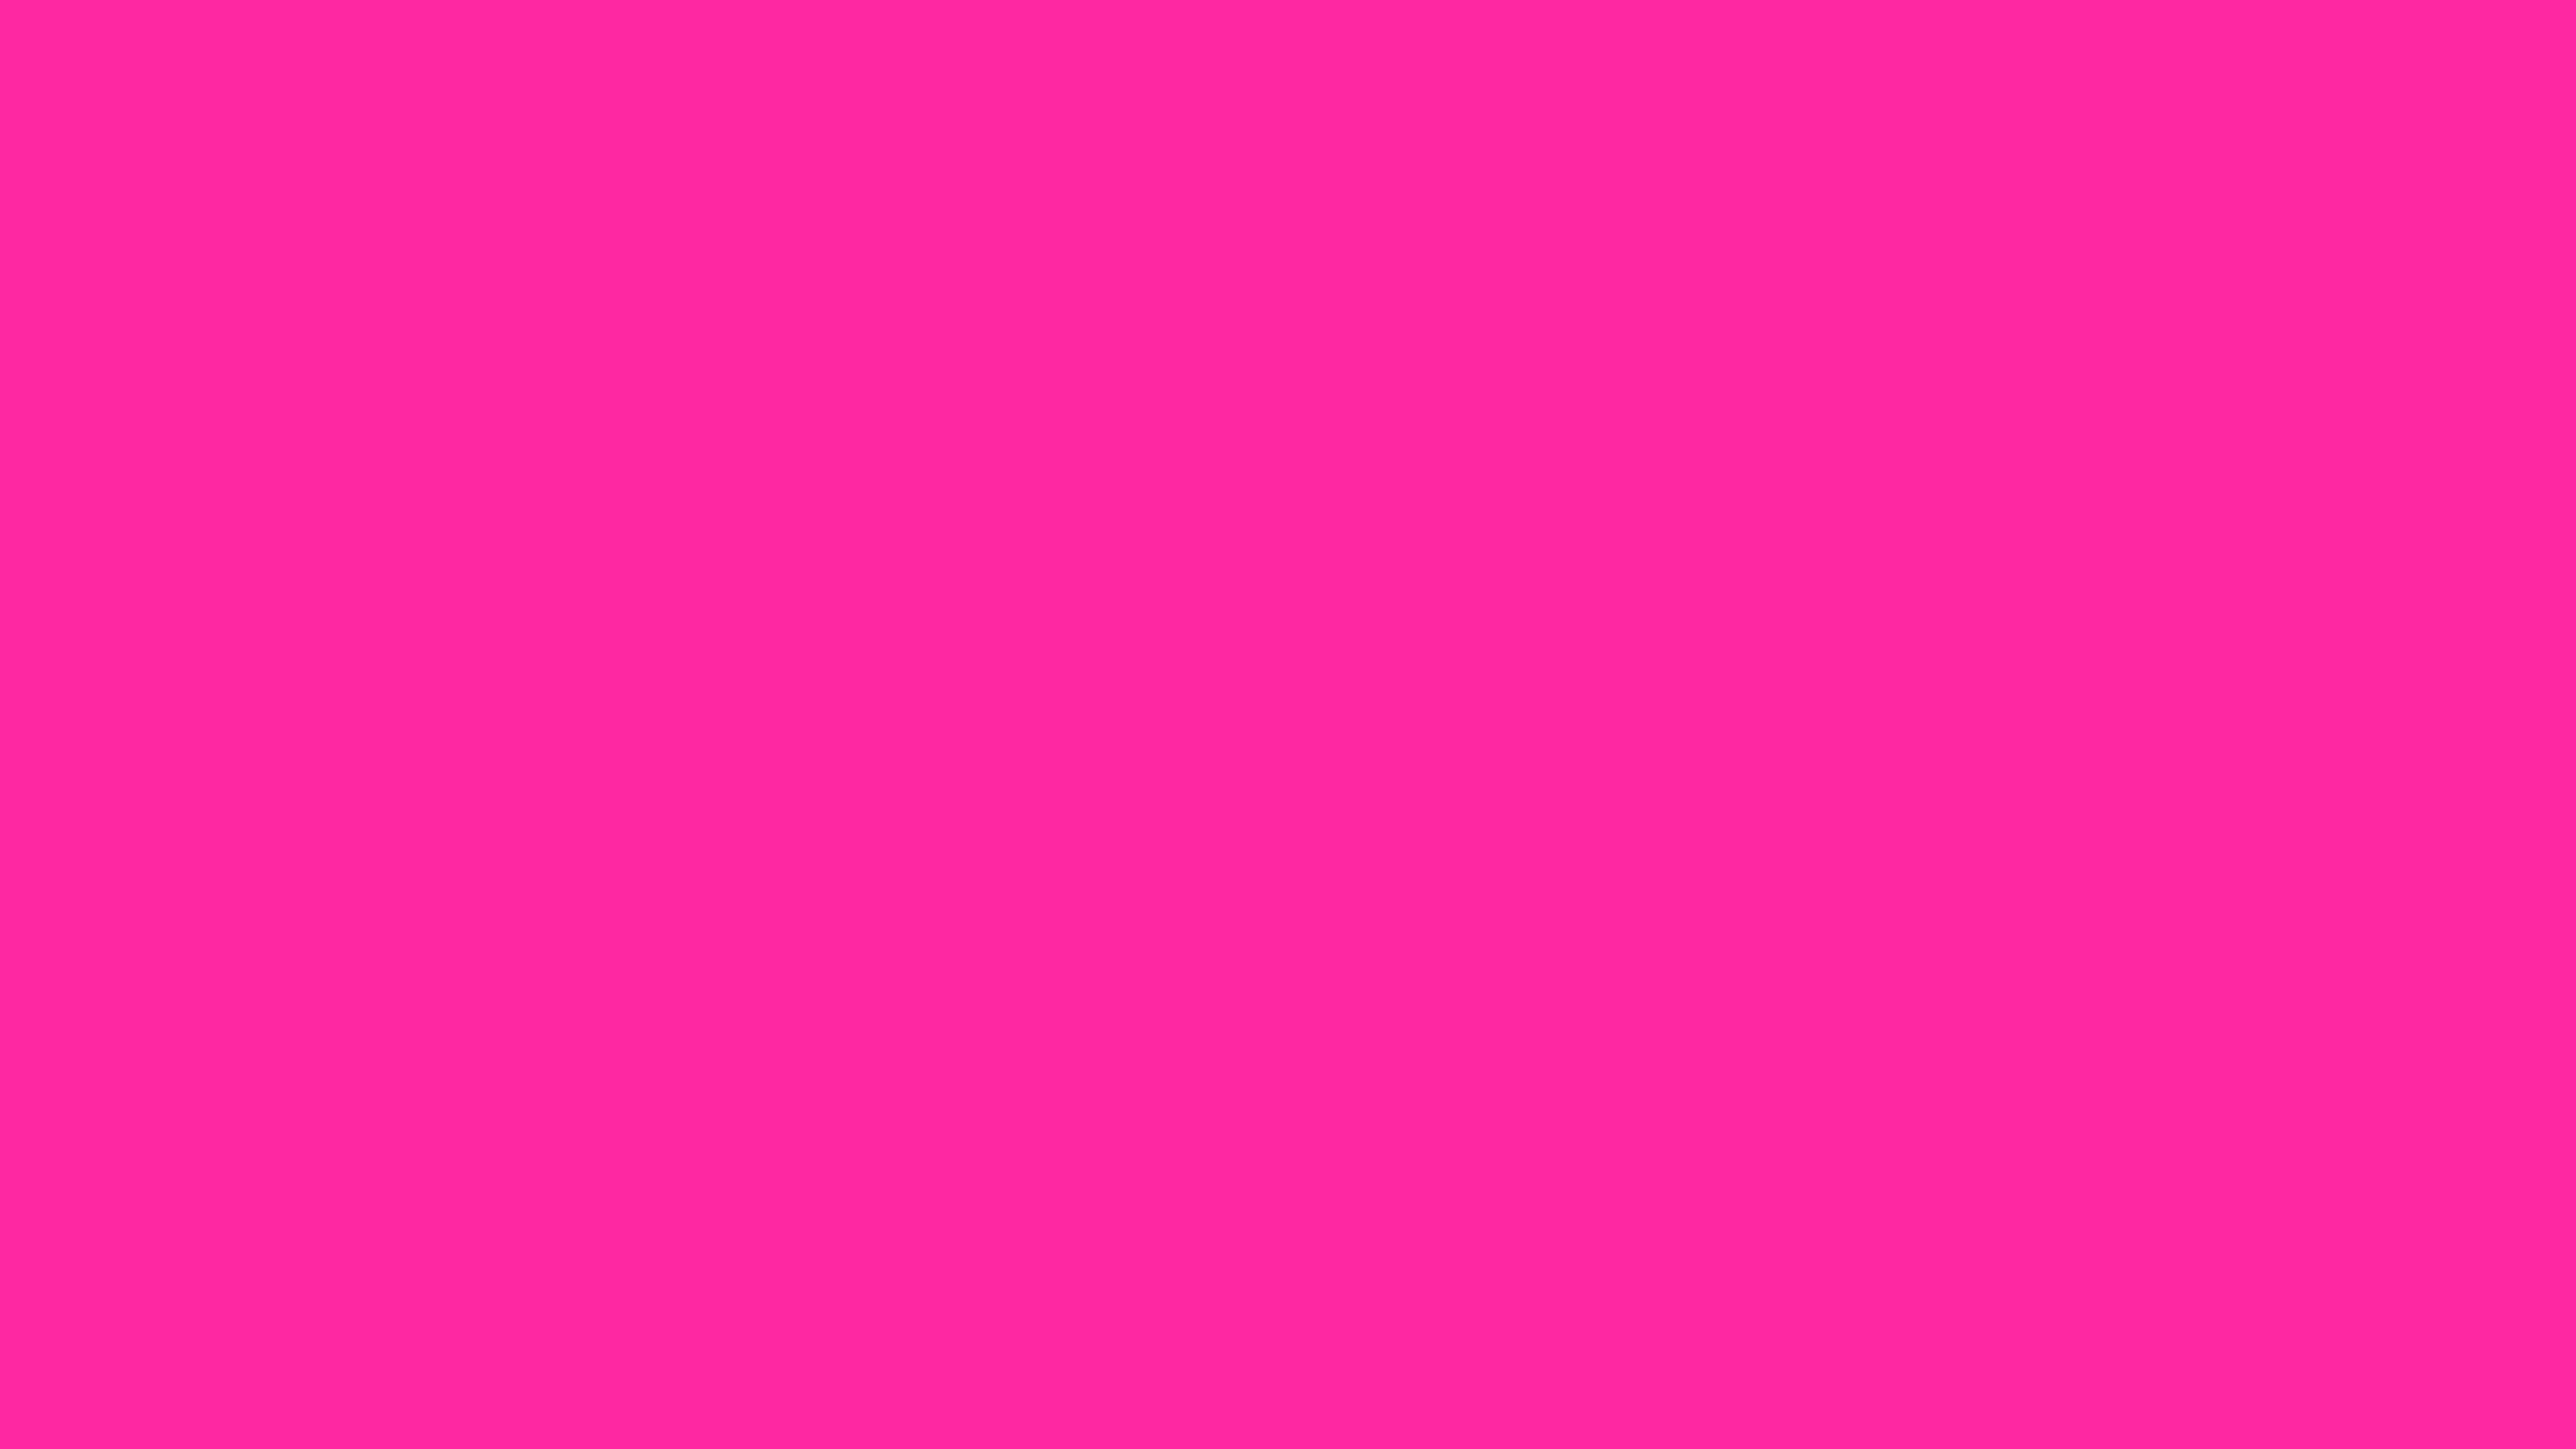 5120x2880 Persian Rose Solid Color Background